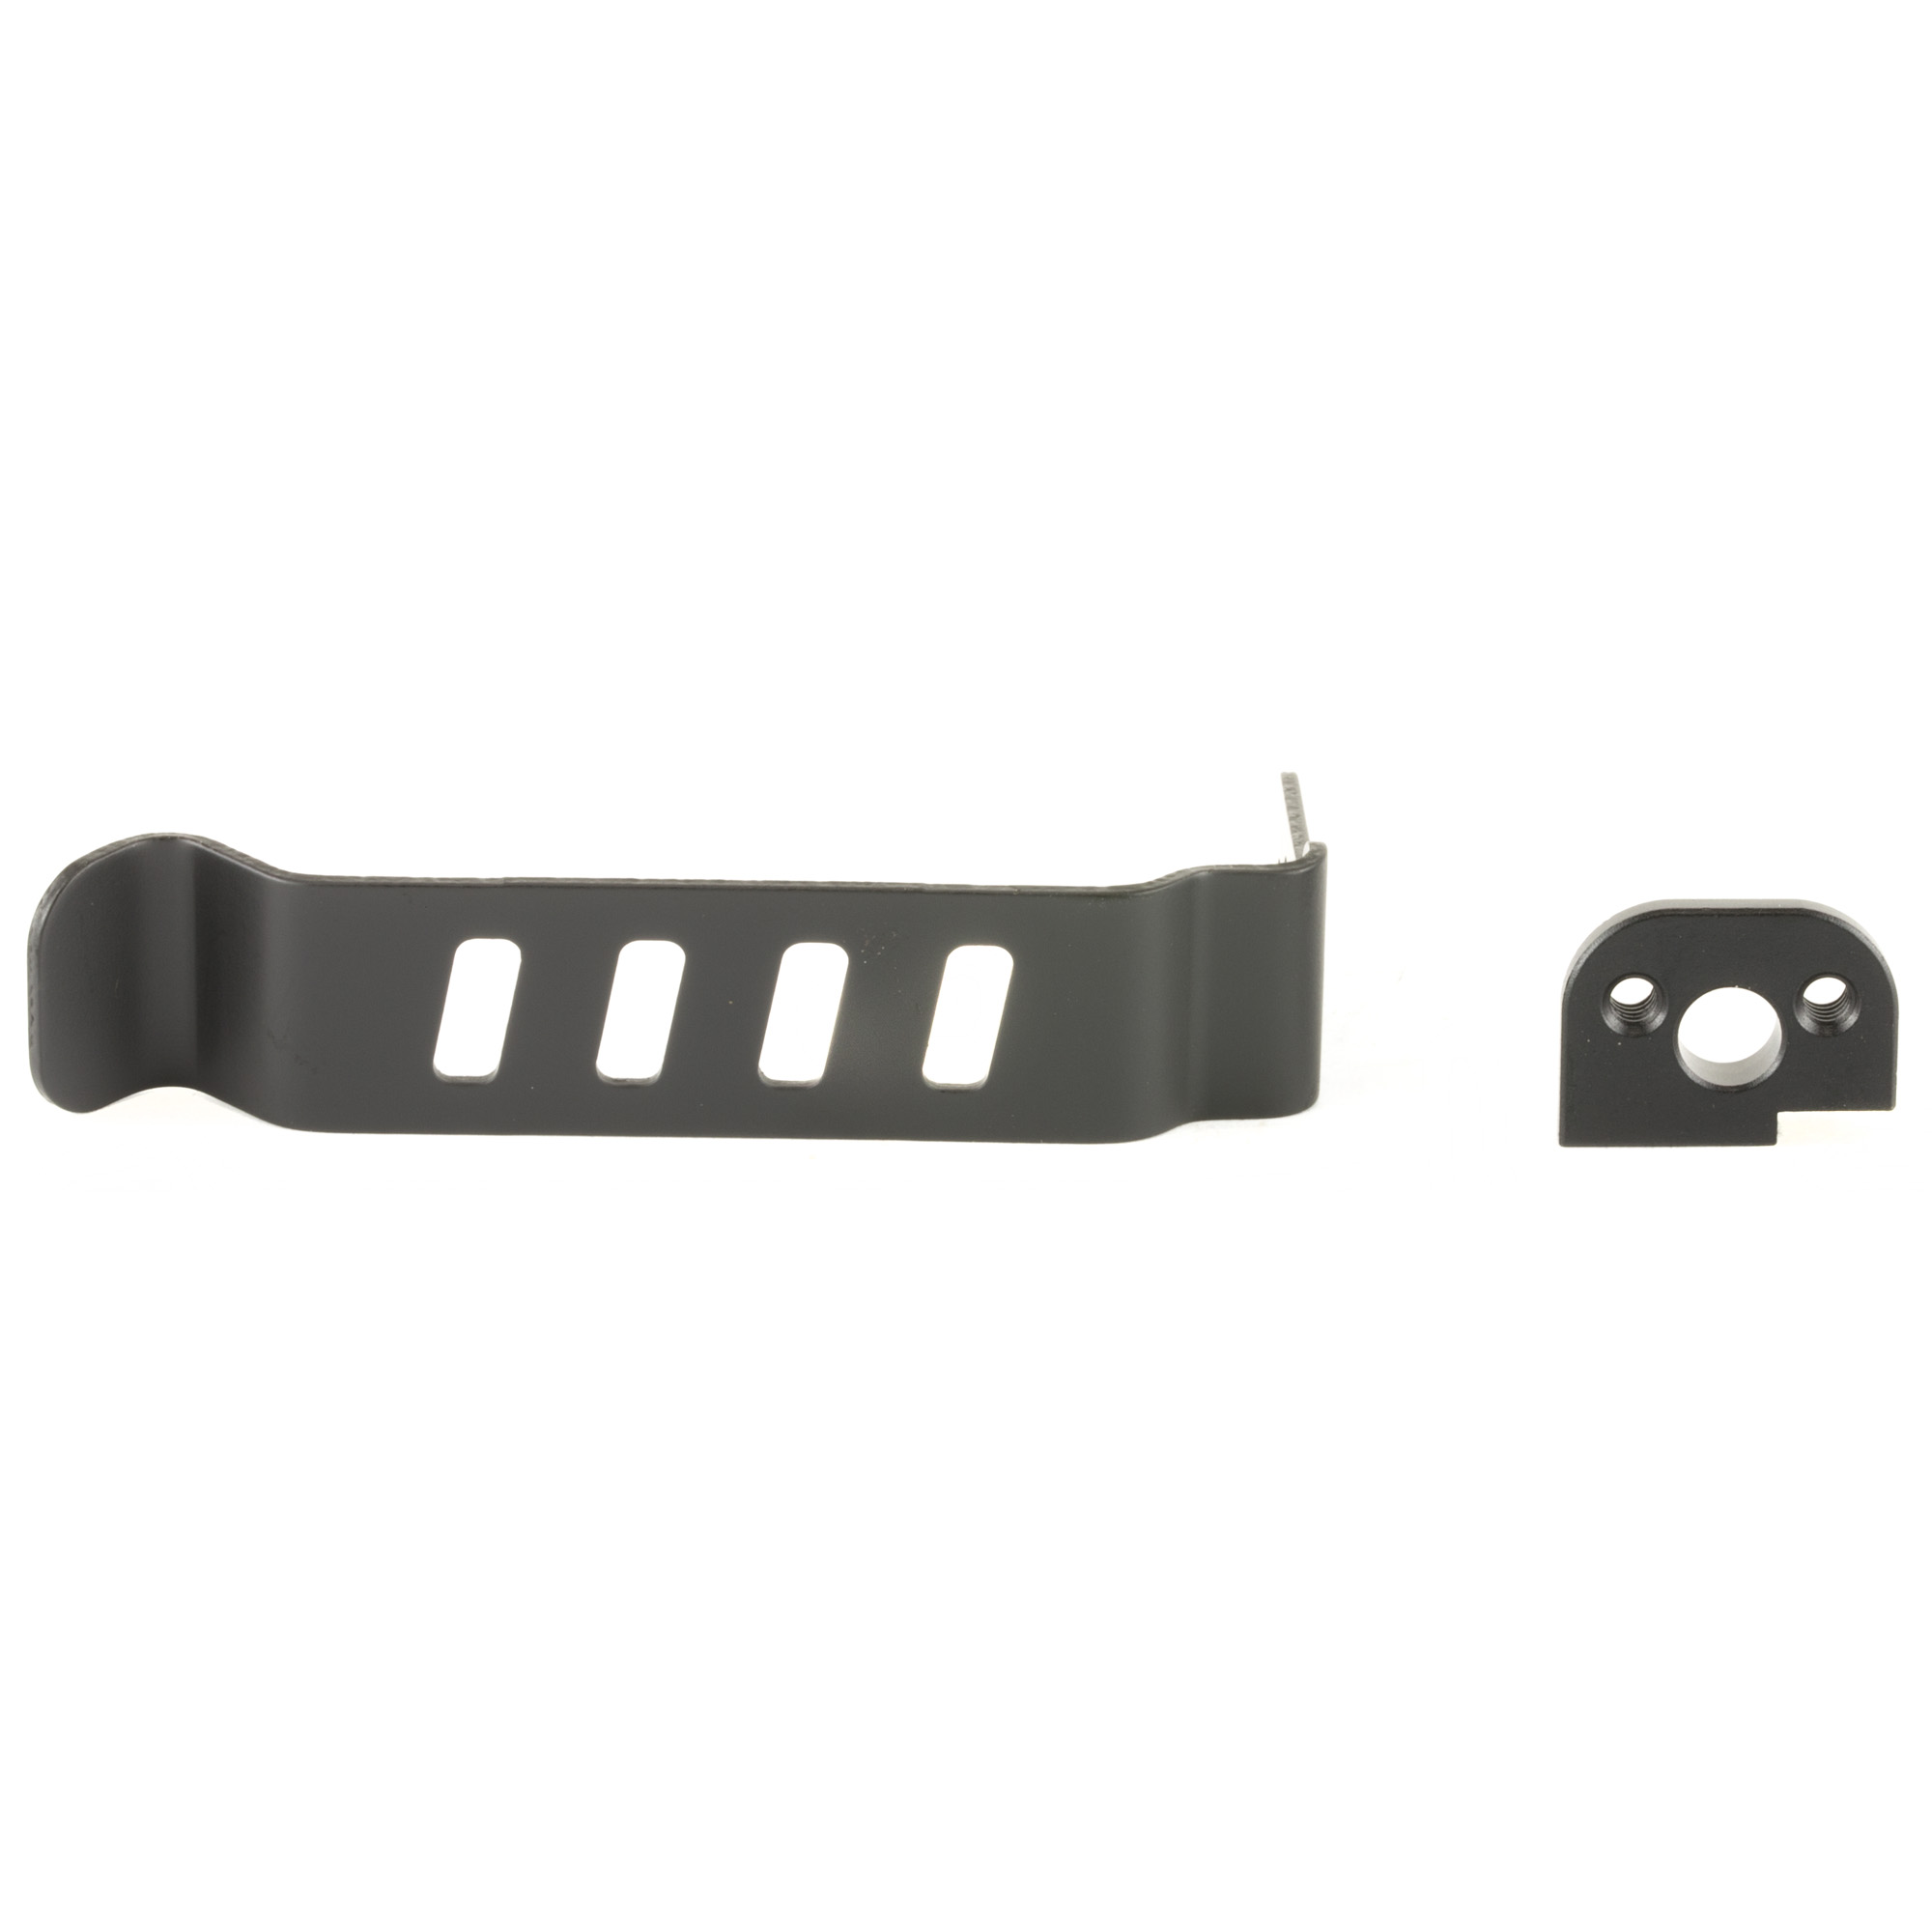 Techna Clips gives you another option for concealed carry. The Techna Clip is a heat treated spring steel waistband/belt clip that installs easily on your pistol and permits carry without the added bulk of a holster. It is light weight and allows for a fast draw. No gunsmithing is required to install. Each Techna Clip comes with a small metal post and screw that replaces an existing pin on the gun.